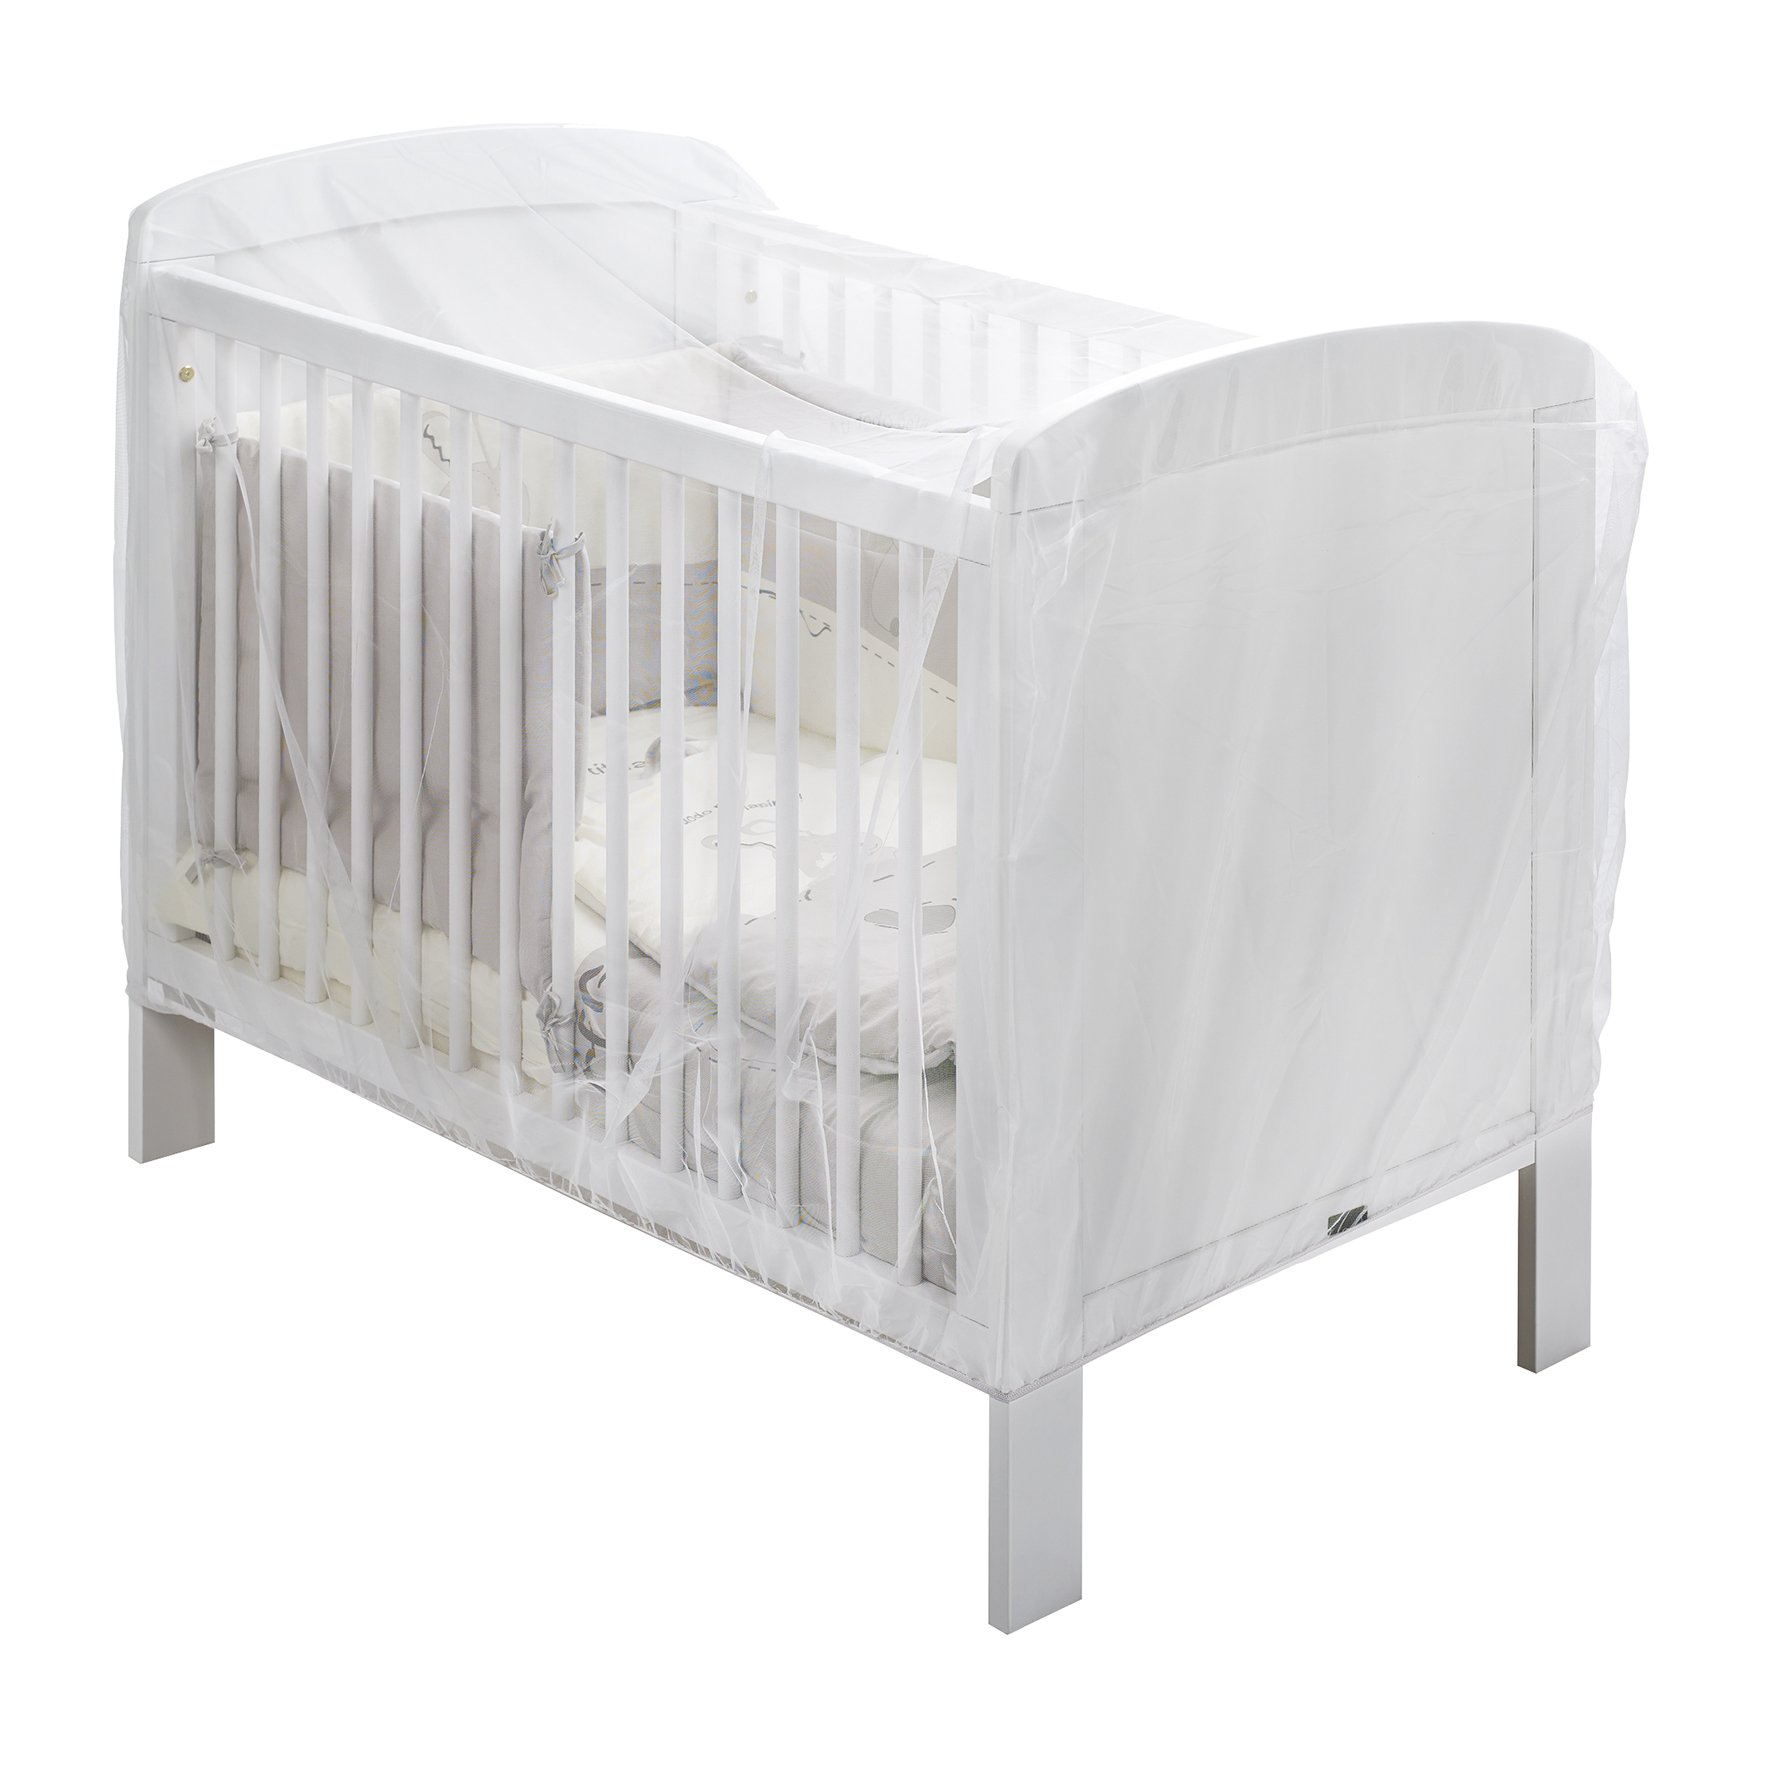 THERMOBABY Moustiquaire Lit 70 X 140 Transparent